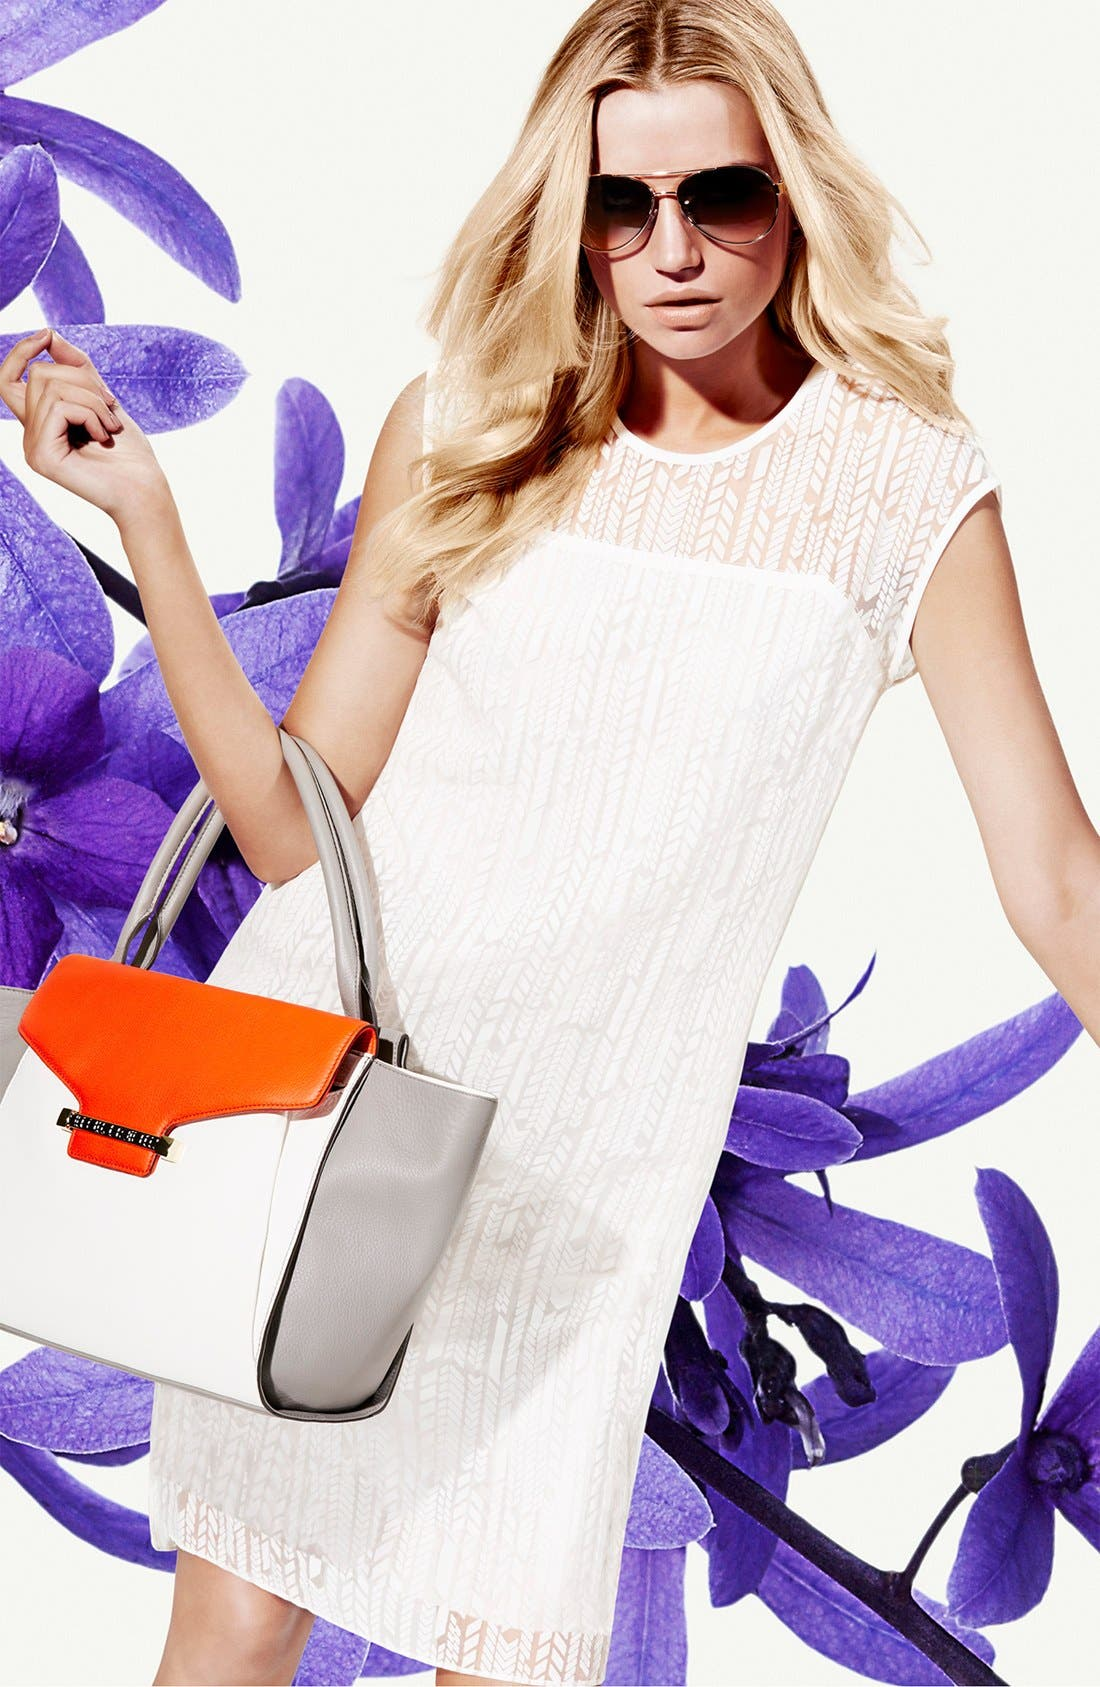 Main Image - Vince Camuto Dress & Accessories